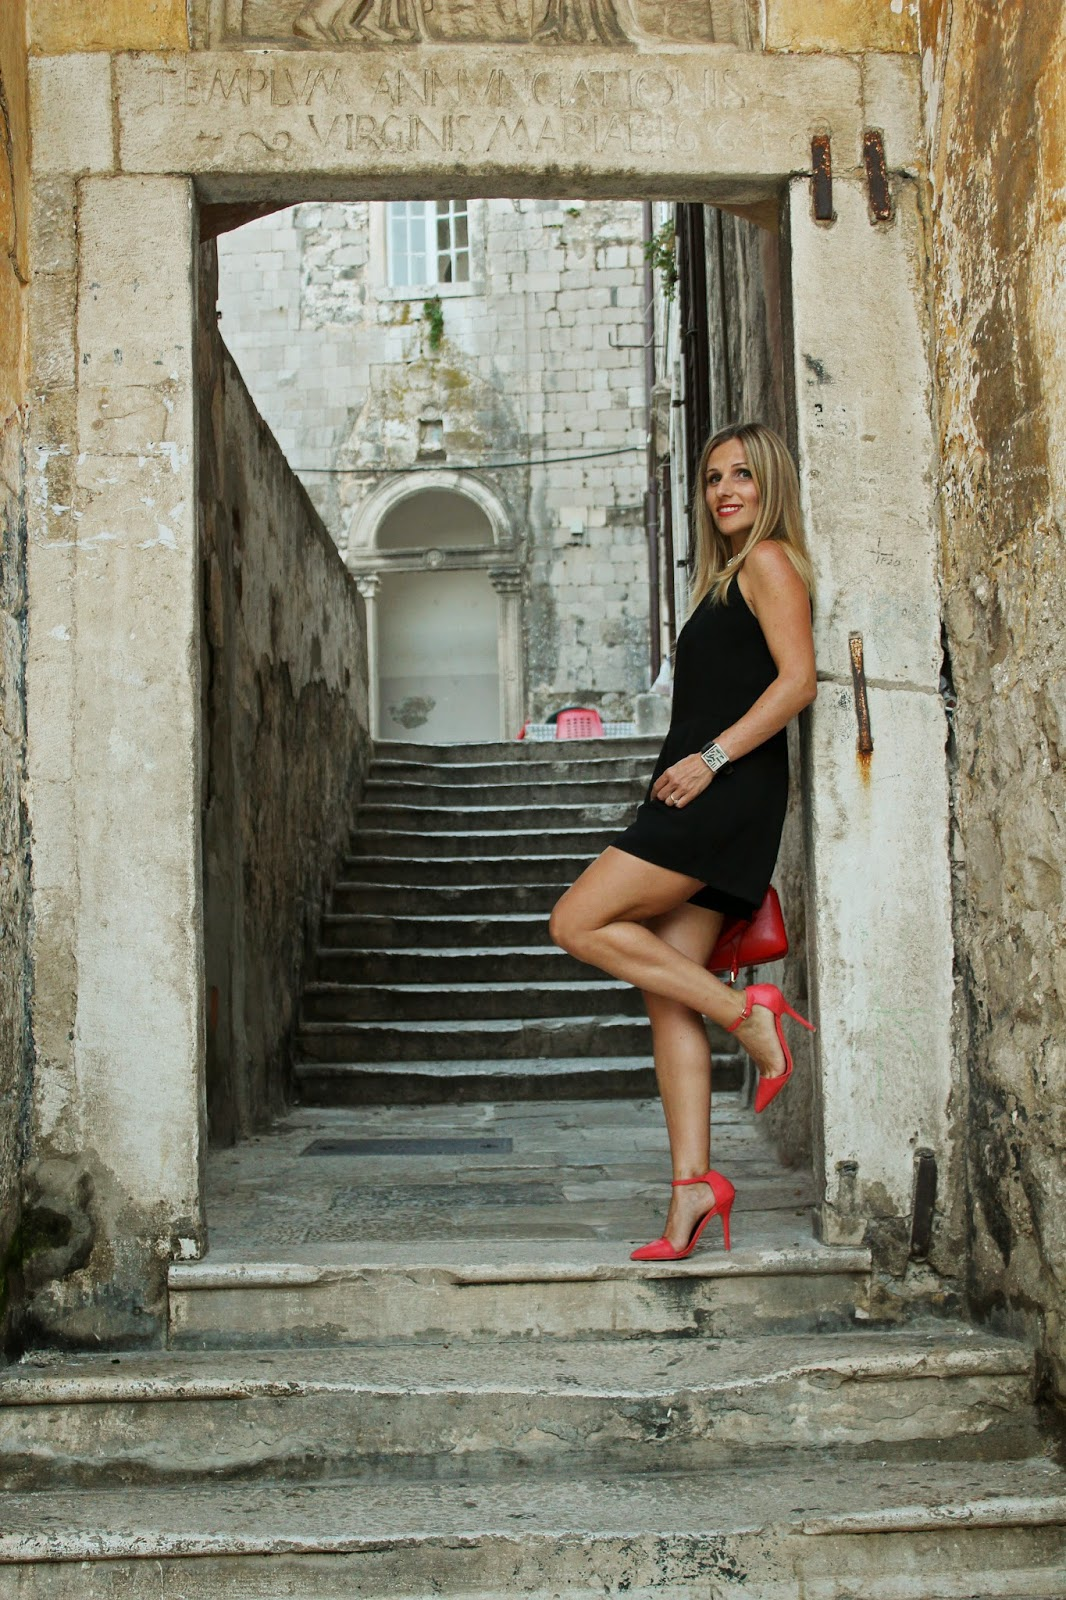 Eniwhere Fashion - Joenia - Dubrovnik